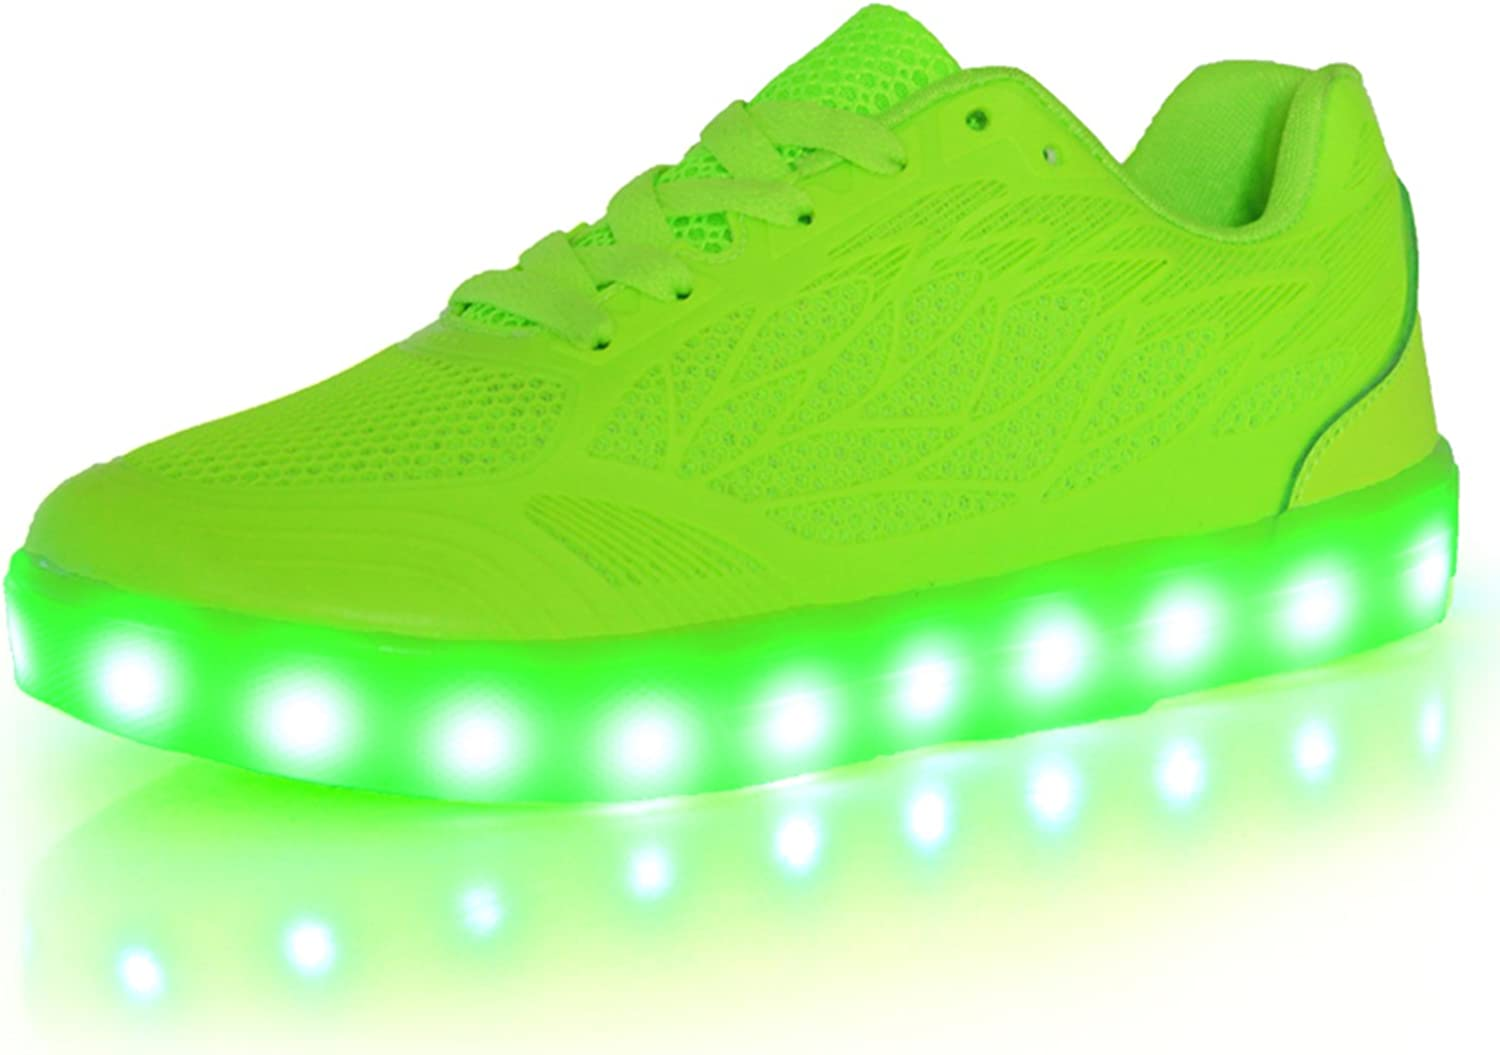 OUYAJI New 7 colors flashing LED light up USB charging Sneakers walking dancing shoes for womens girls